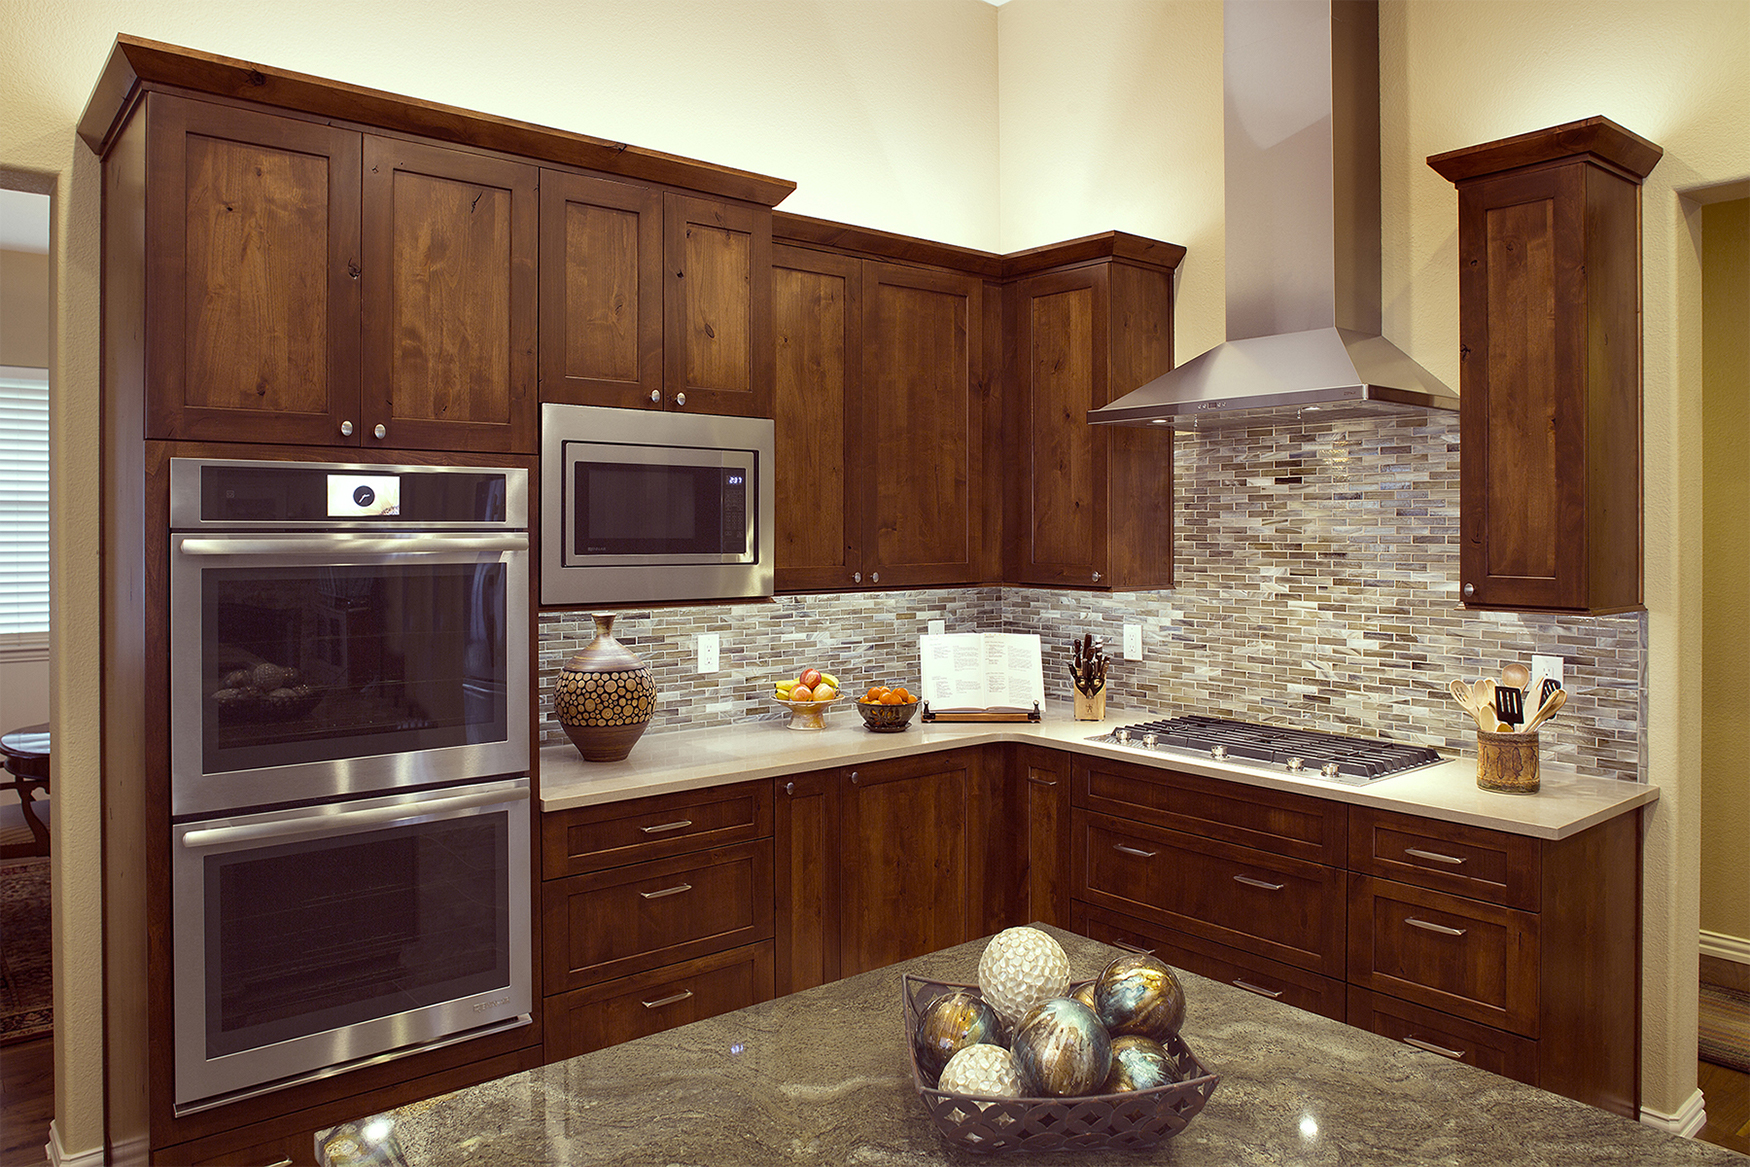 Stained Kitchen Cabinets in Russet with Ebony Glaze by ShowplaceEVO - view 7